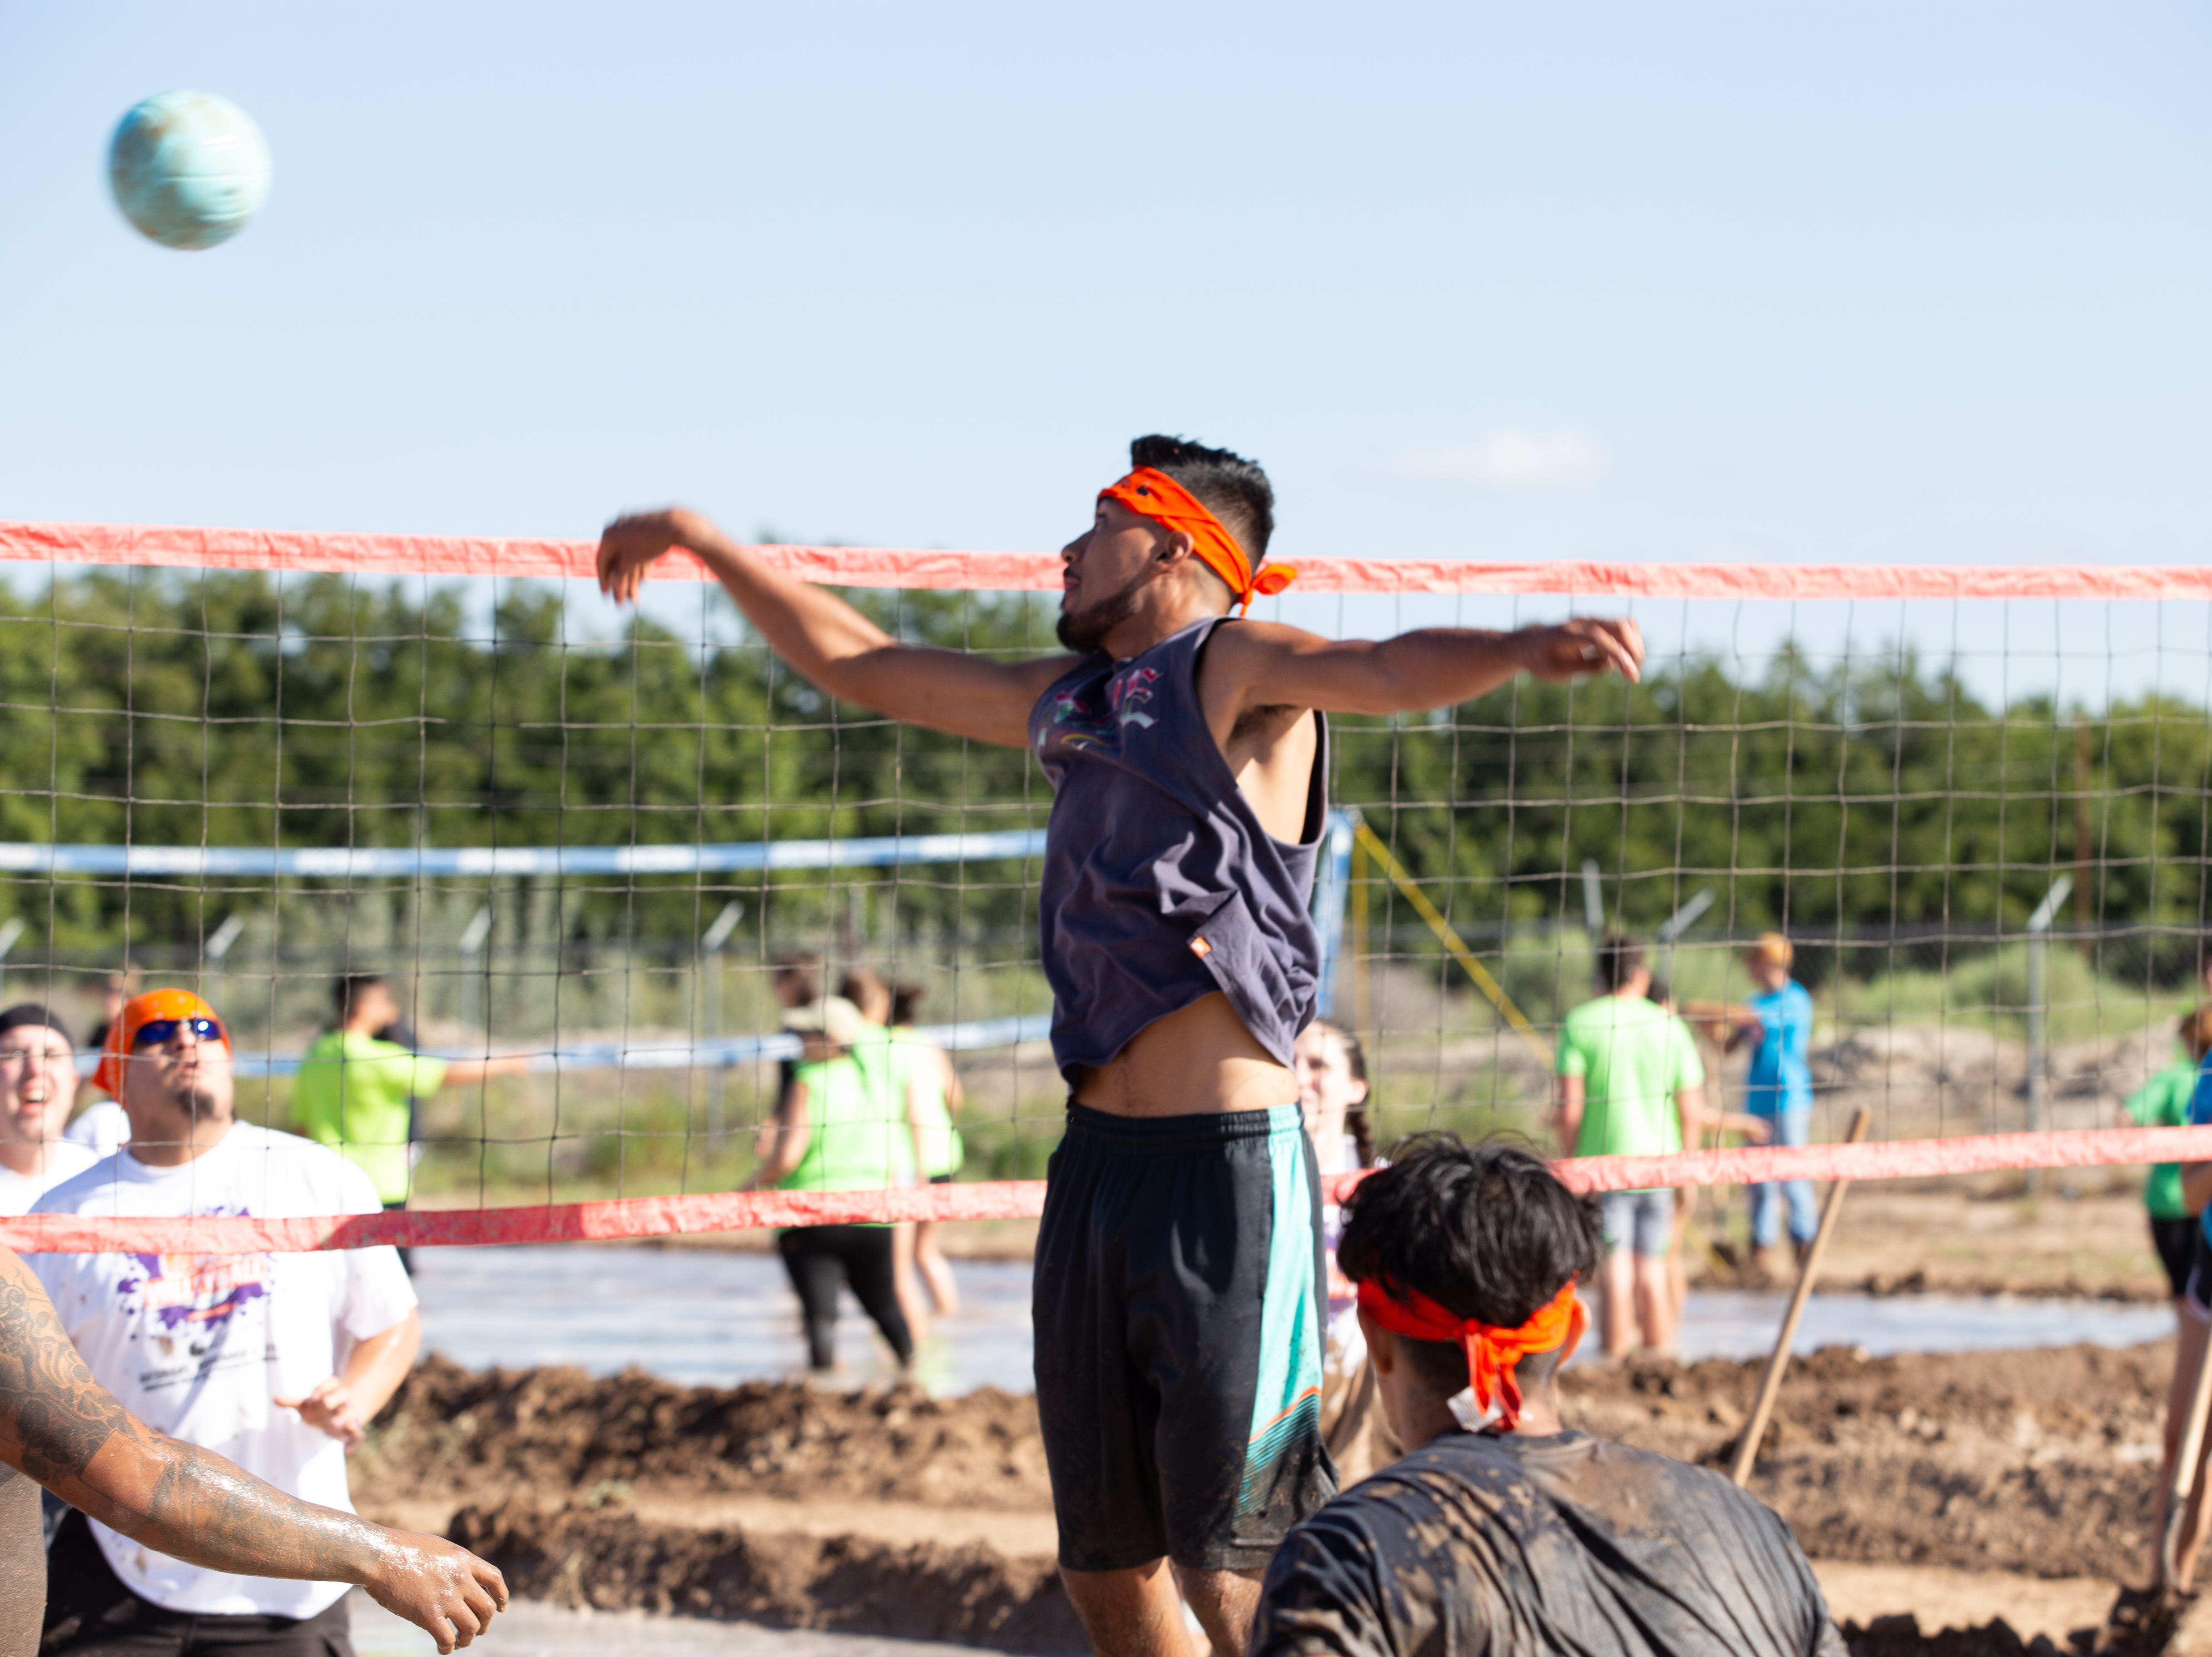 David Castellanos playing for Volley Llamas pops one over the net during the 9th Annual Mudd Volleyball tournament on September 8, 2018.